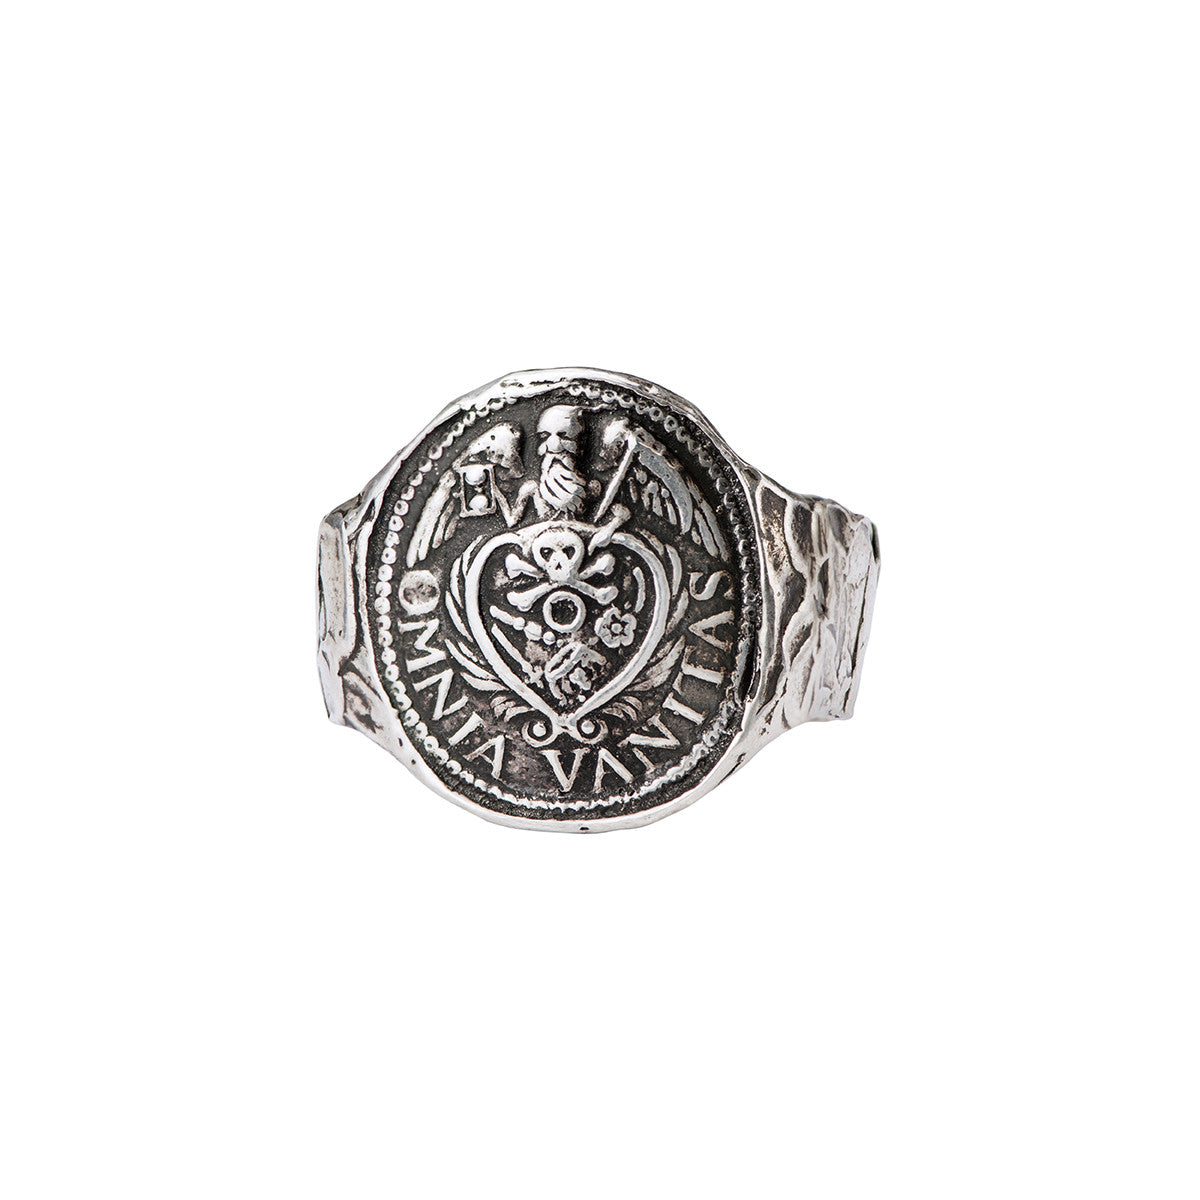 Vanity Narrow Formed Band Ring - Pyrrha